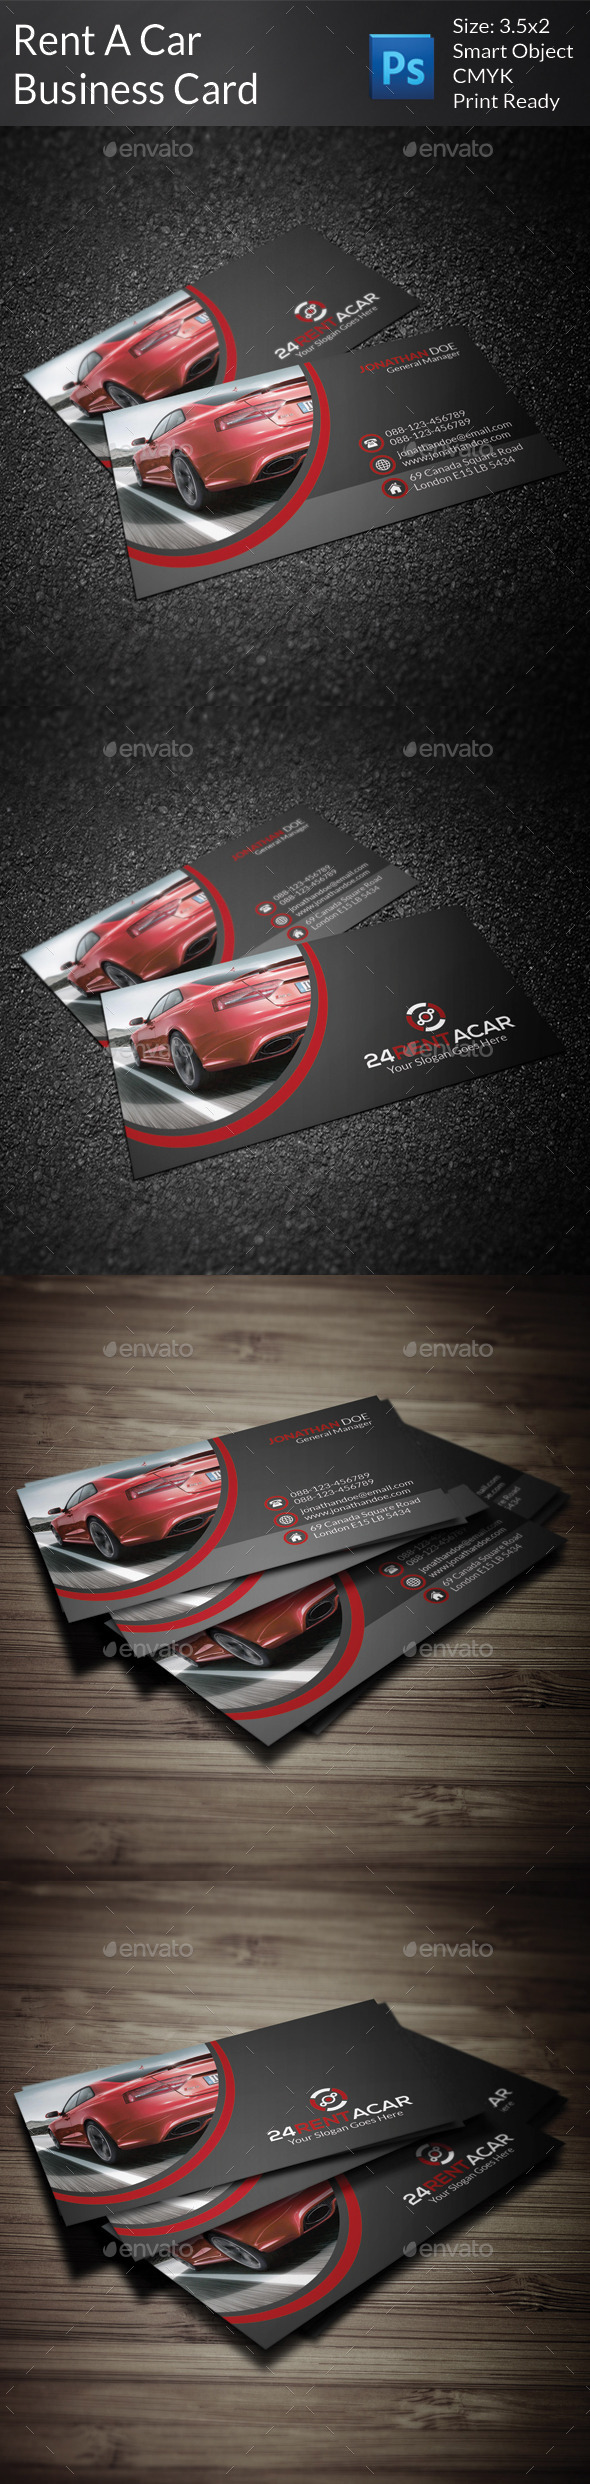 GraphicRiver Rent A Car Business Card 9299674